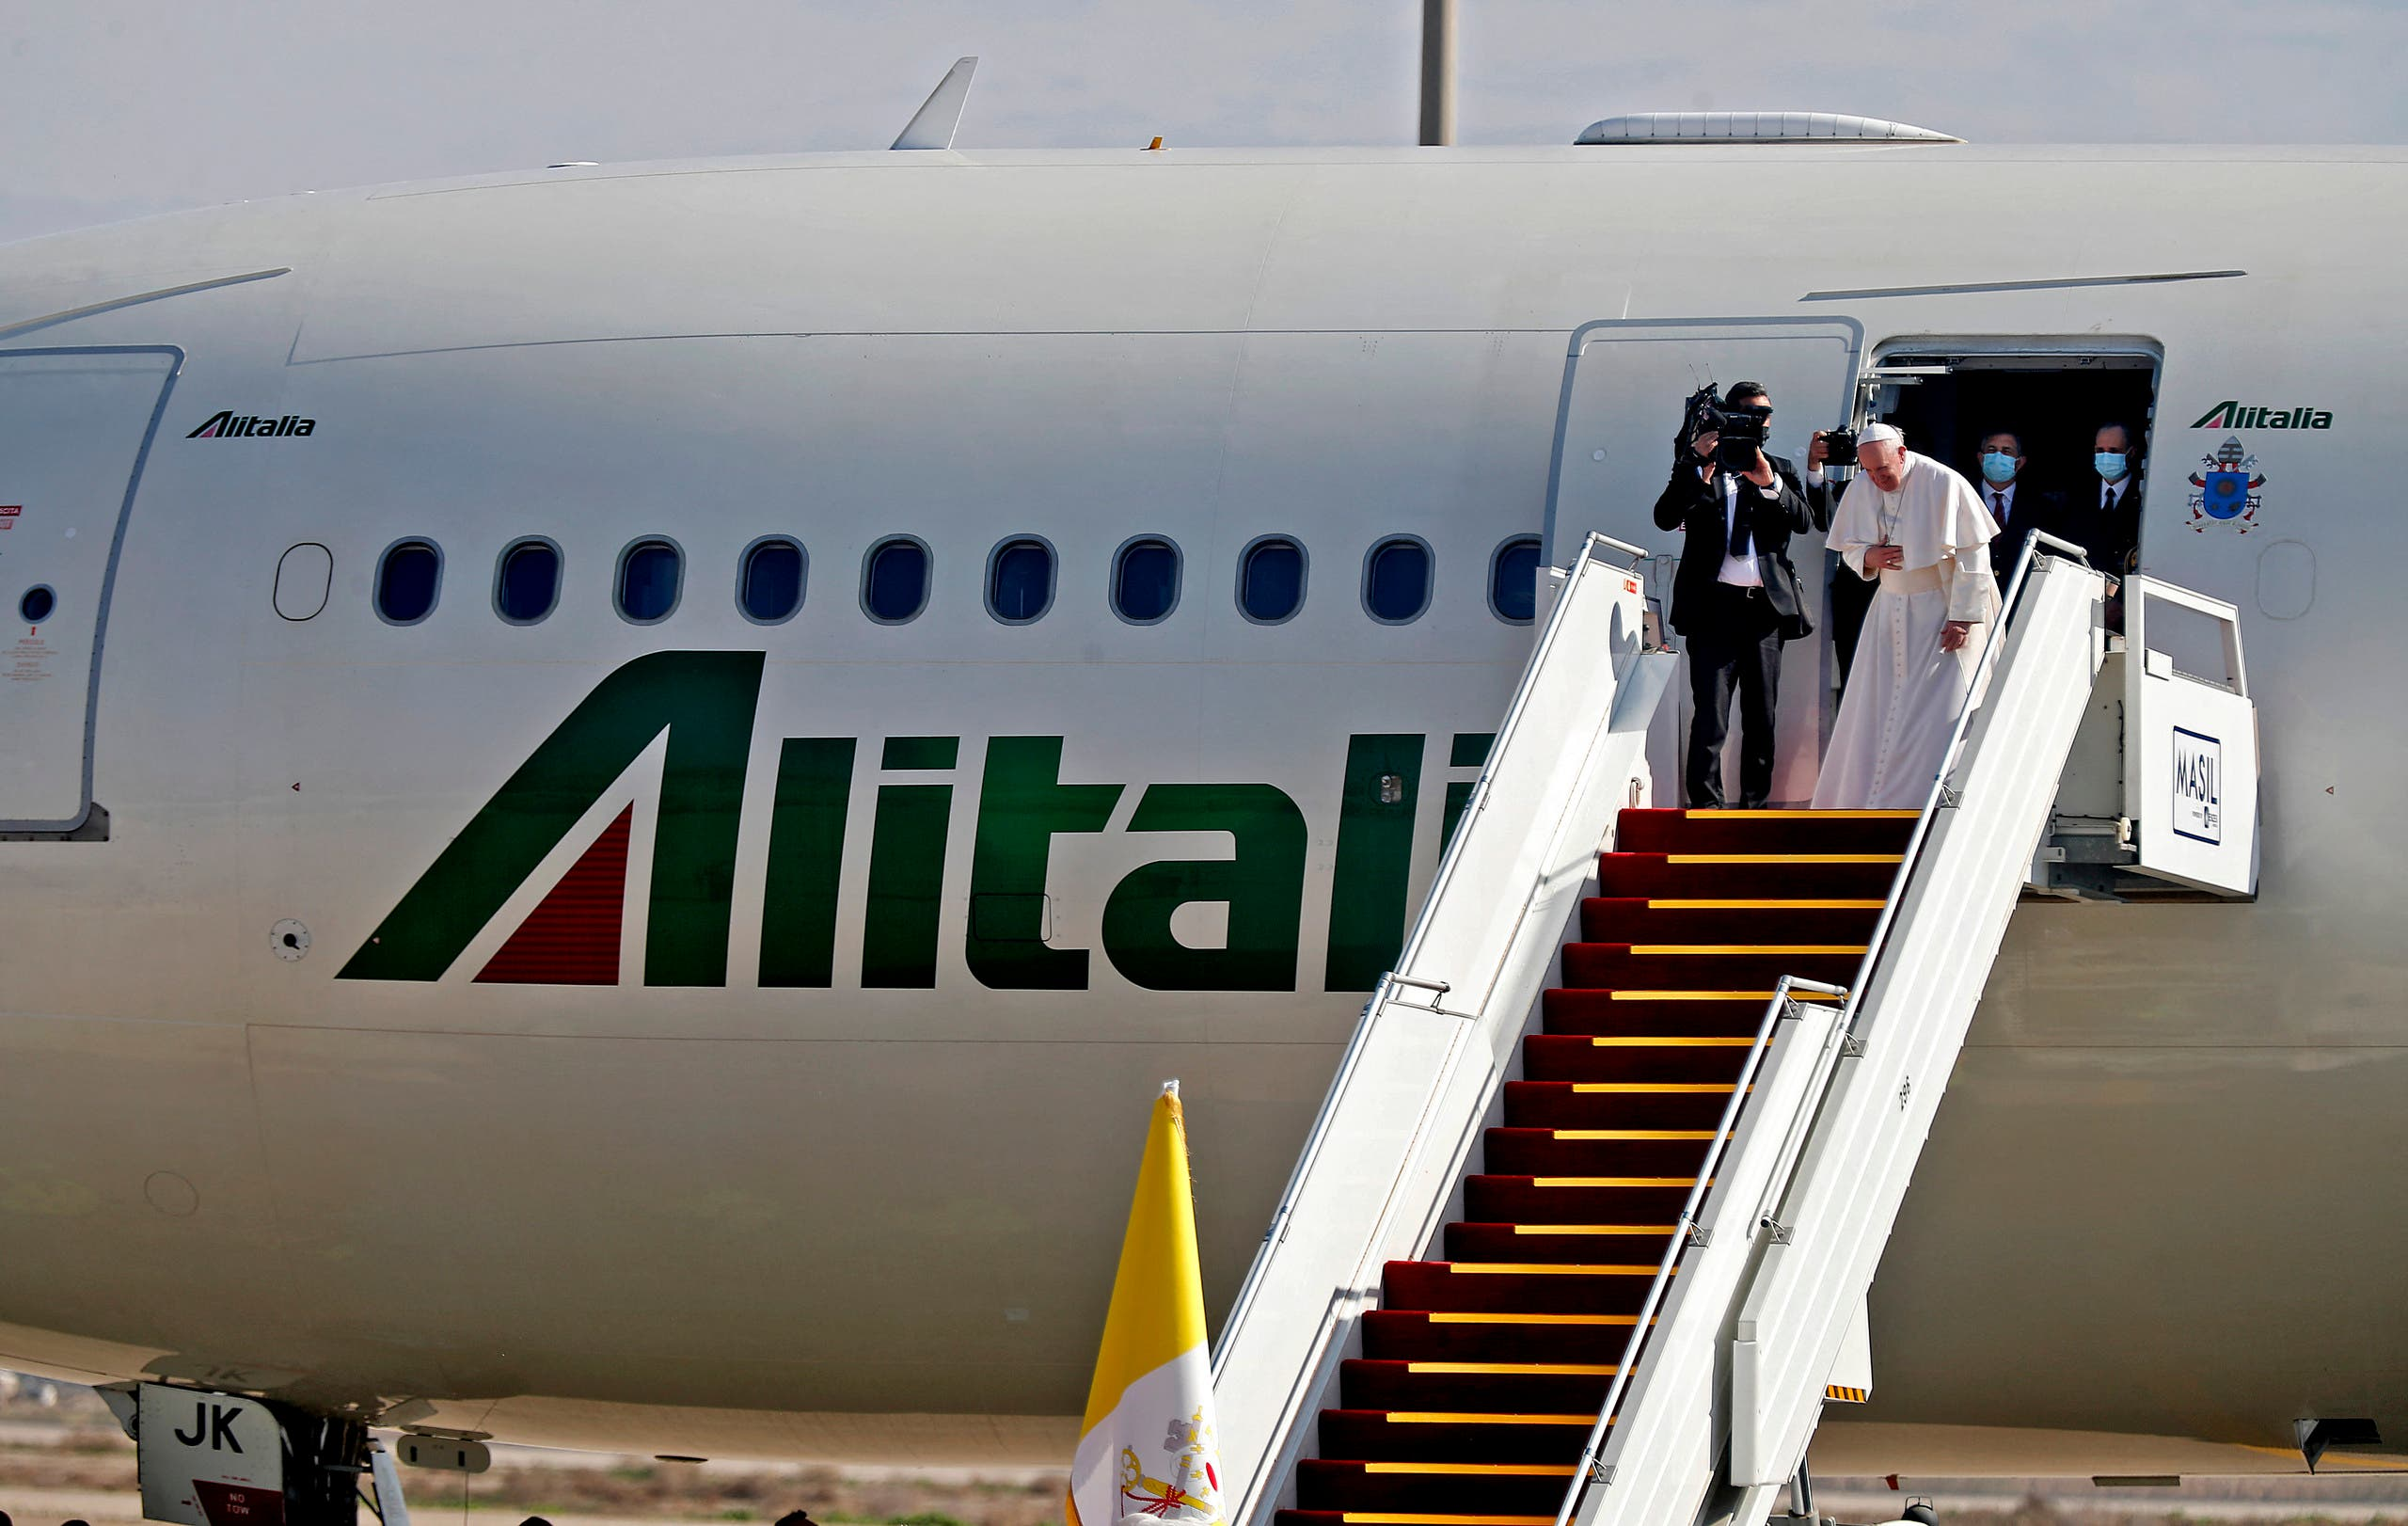 Pope Francis bows in farewell to his hosts before boarding his Alitalia Airbus A330 aircraft as he departs from the Iraqi capital's Baghdad International Airport on March 8, 2021. (AFP)